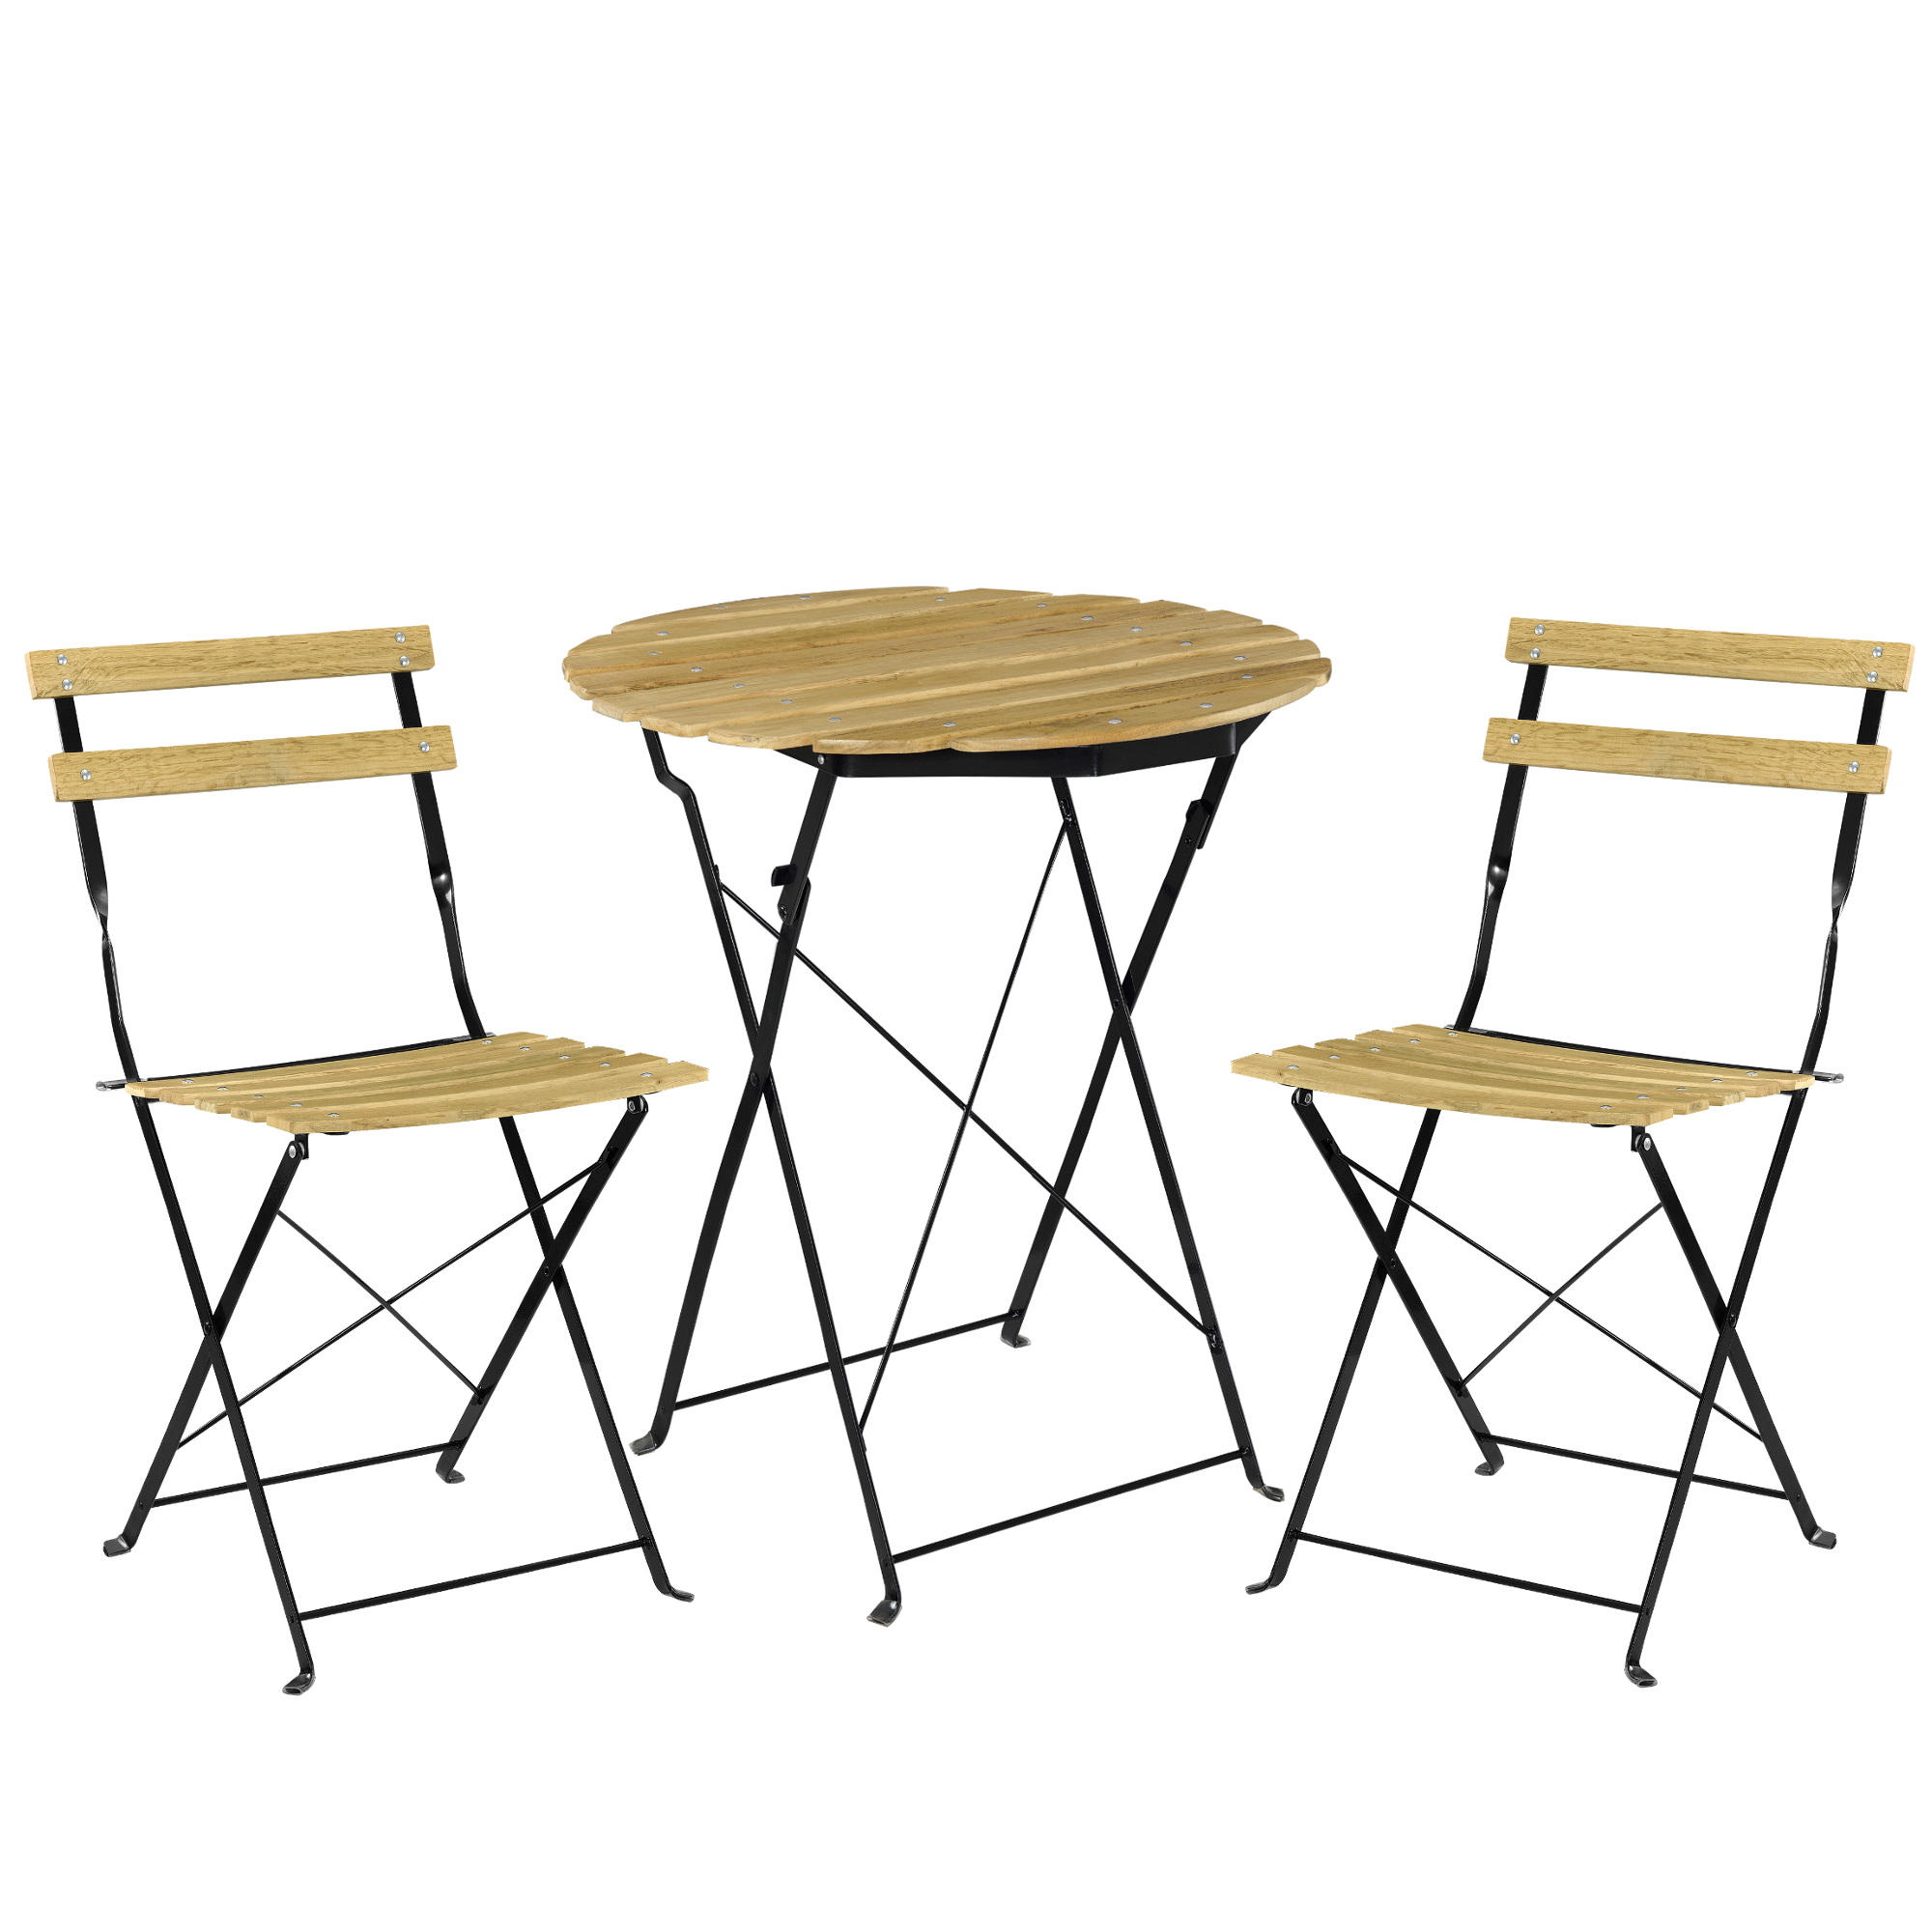 bistro set tisch 2 st hle essgruppe sitzgruppe gartenm bel balkon ebay. Black Bedroom Furniture Sets. Home Design Ideas